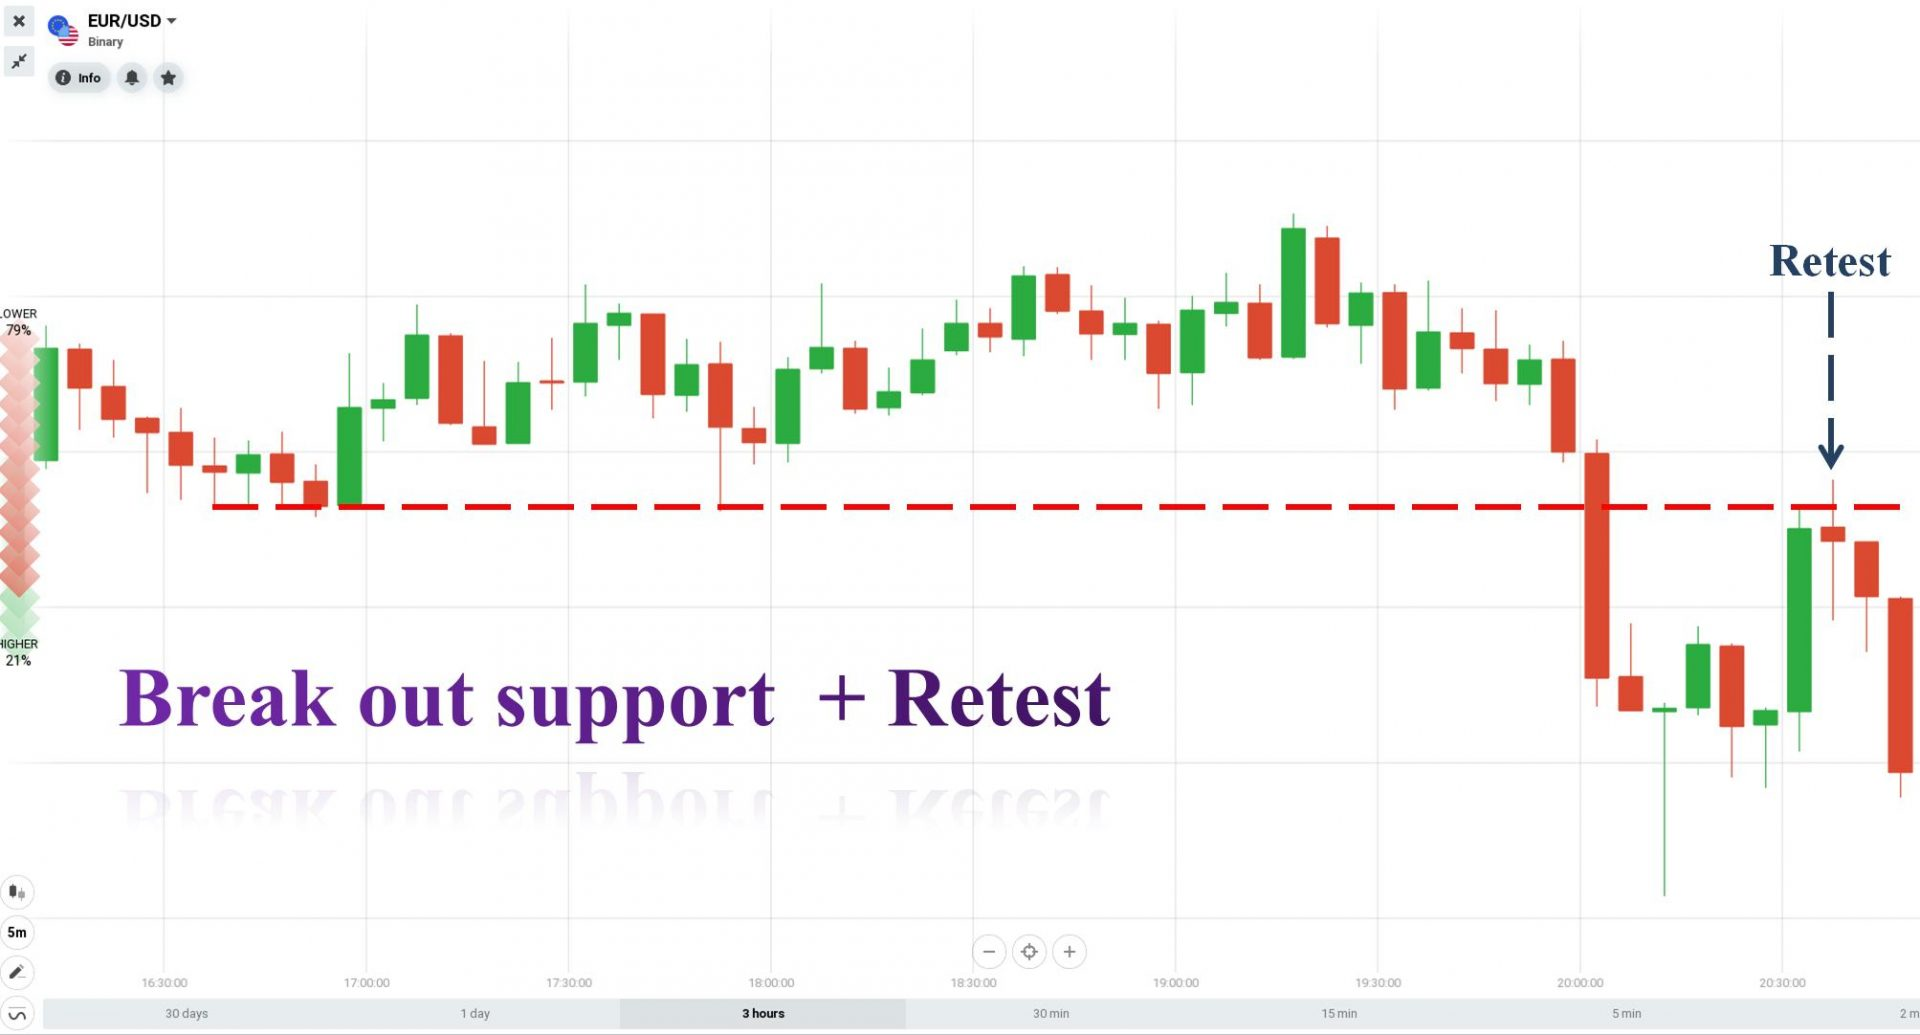 The price breaks out of the support